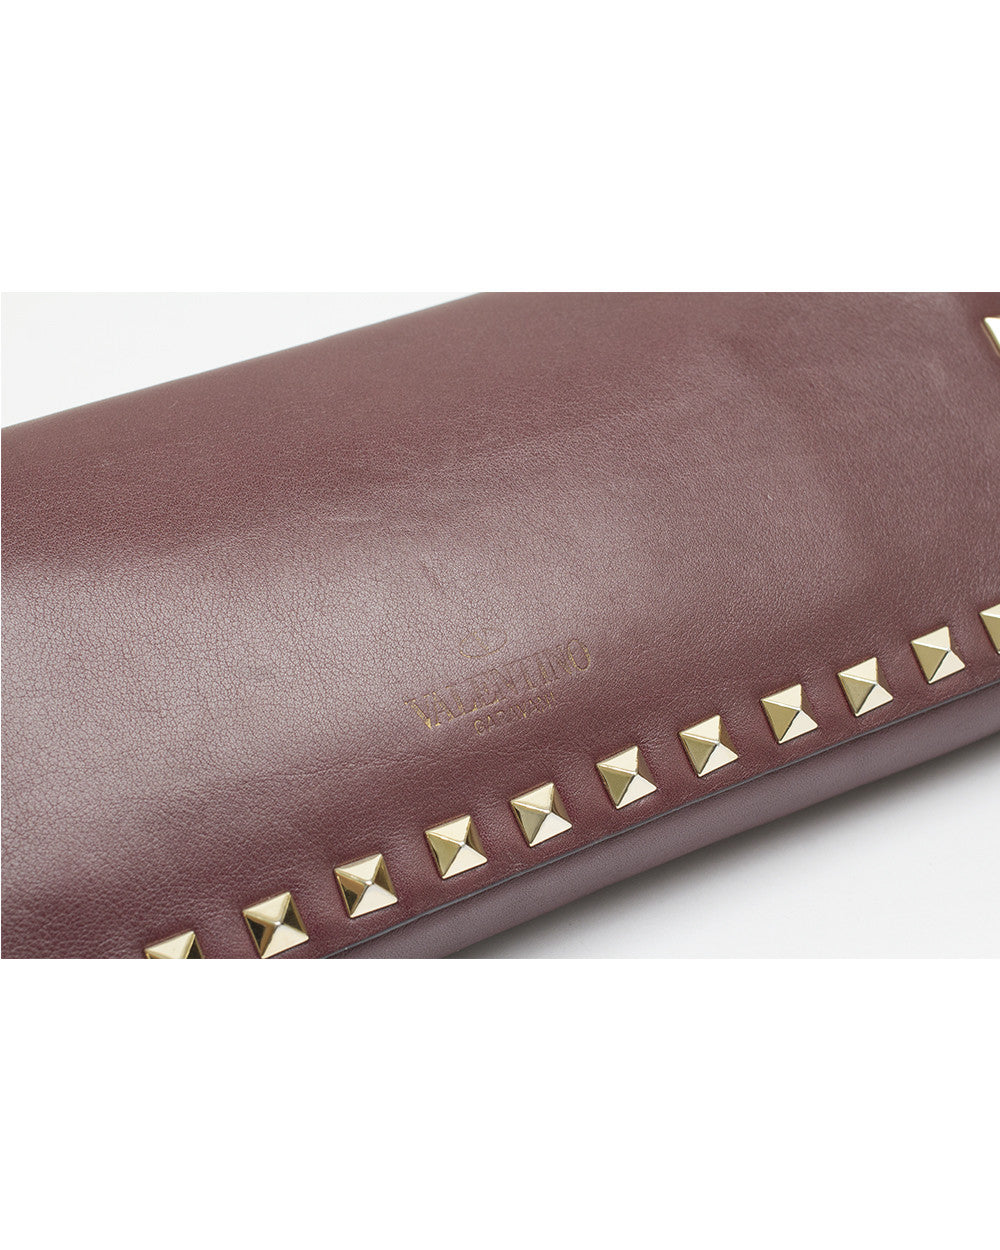 Burgundy Rockstud Clutch Bag